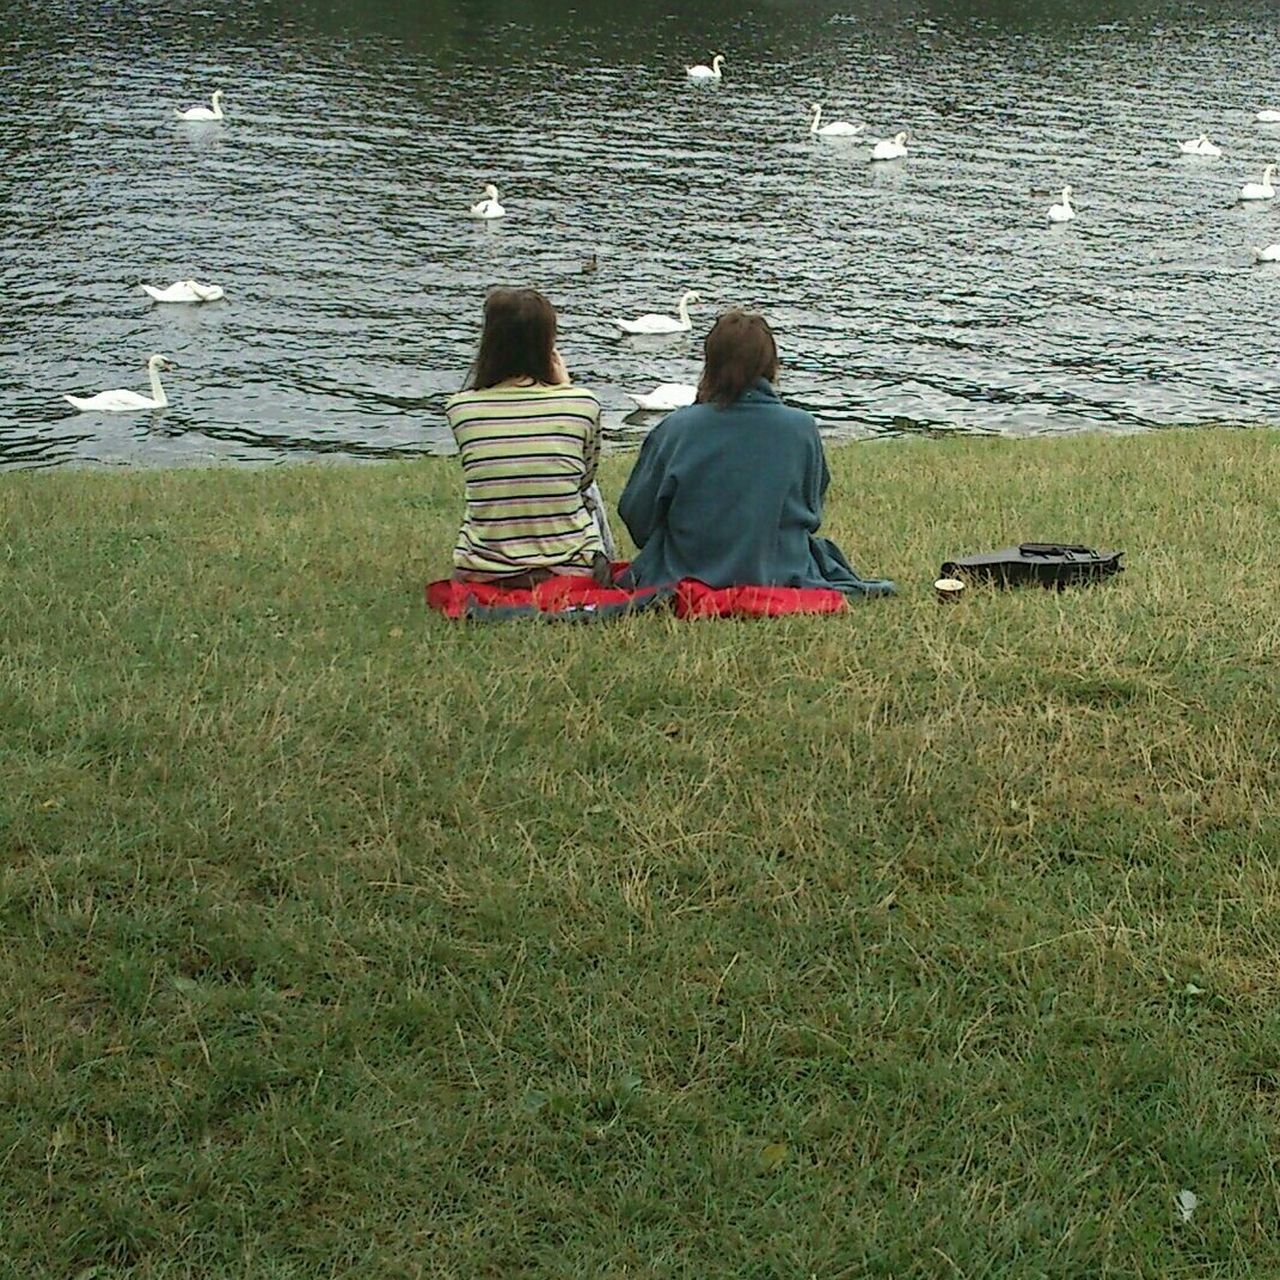 Capture Berlin Two People Real People Green Color Grassfield Park Swan Women Leisure Calm Outdoors Togetherness Lake Berlin Capture Berlin